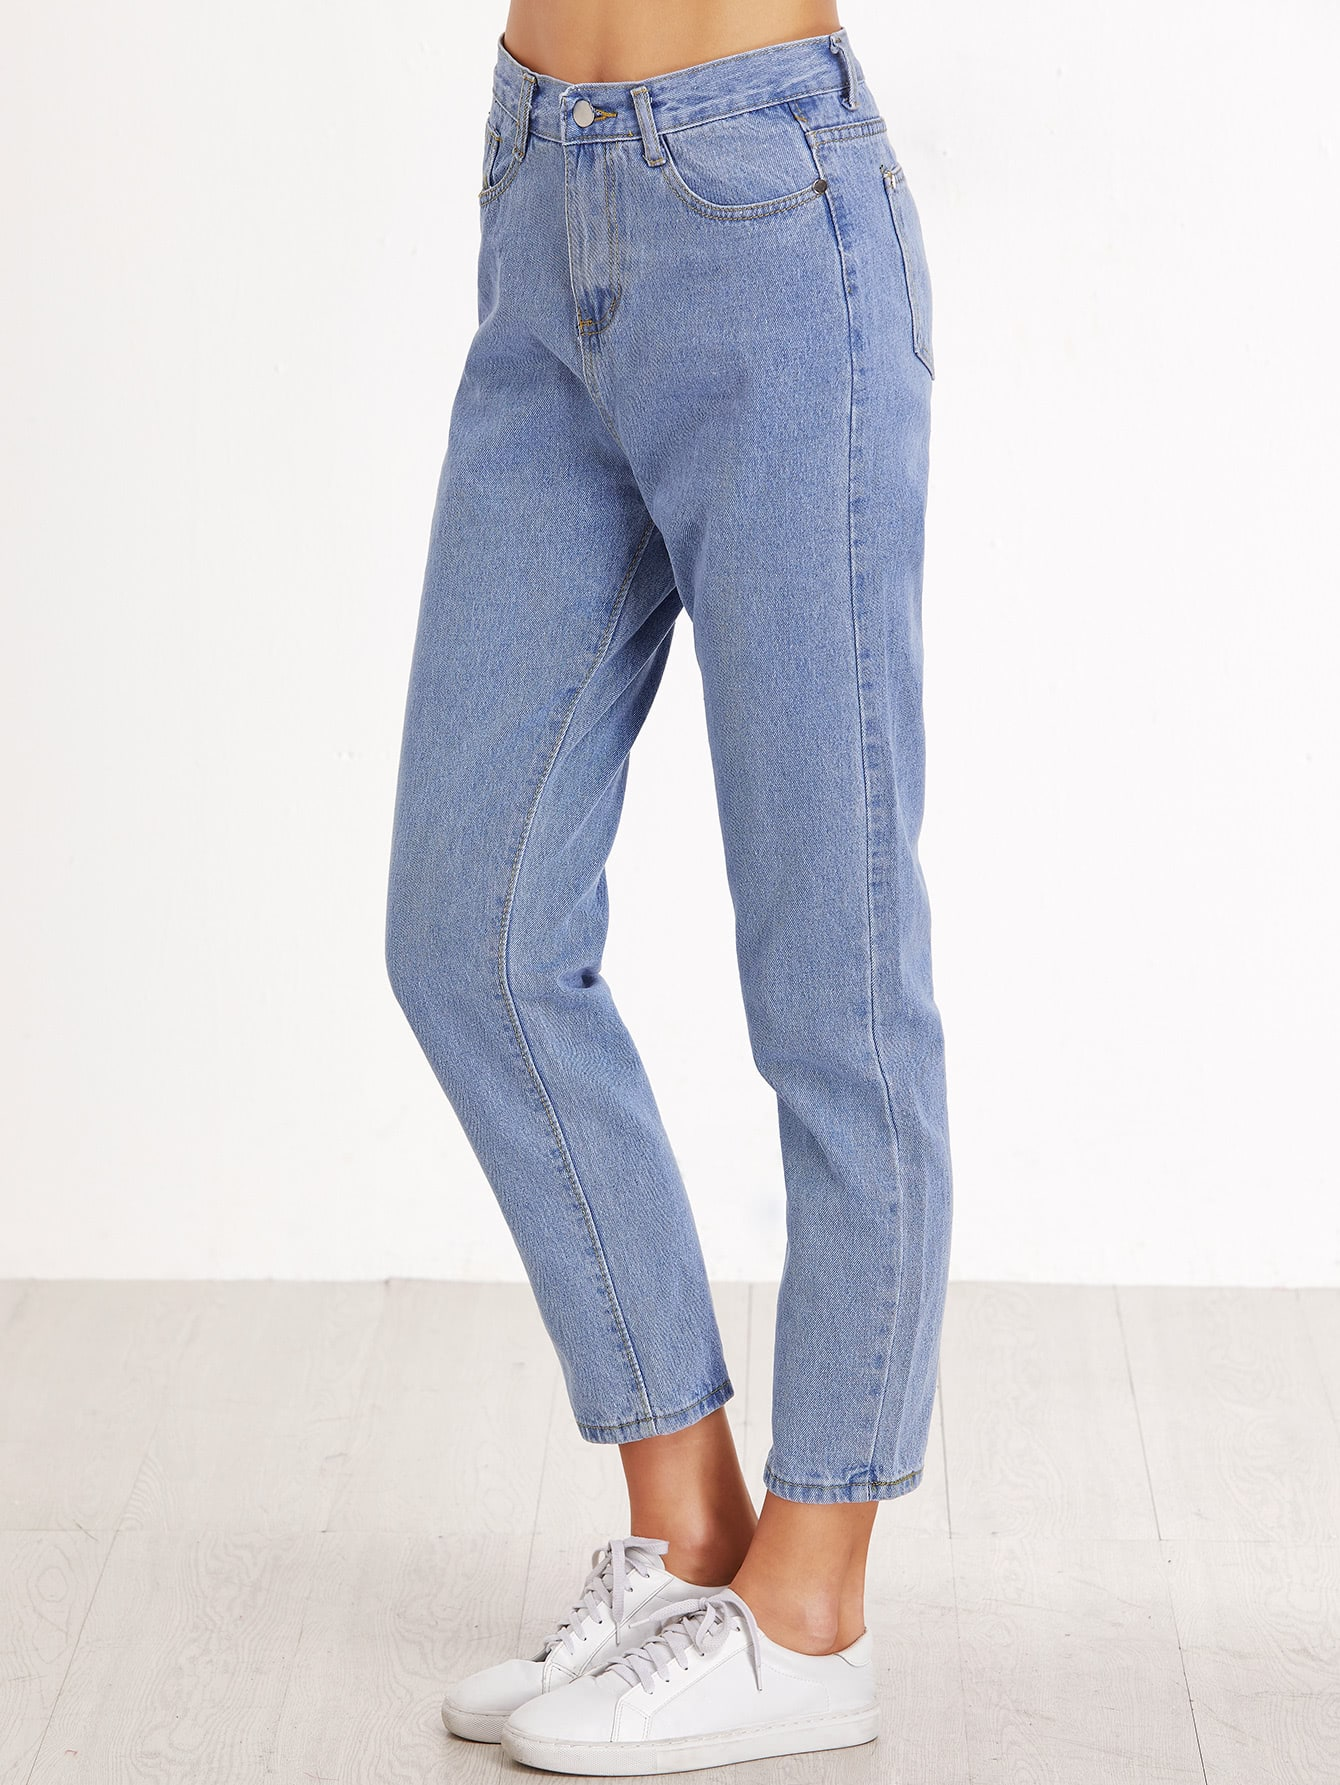 Blue High Waist Pocket Jeans